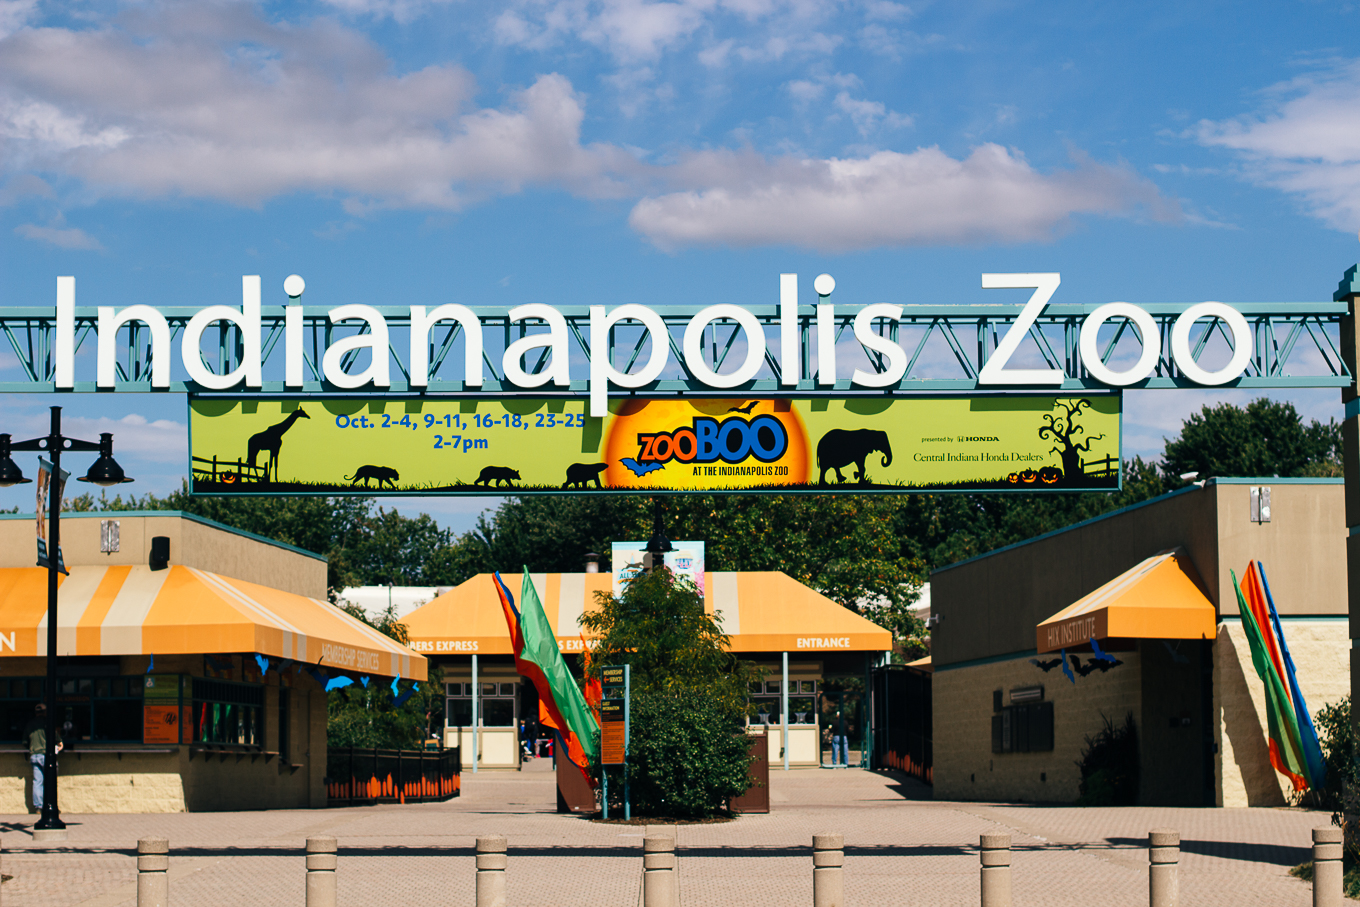 visit indy, indianapolis city guide, where to visit in the midwest, where to go in Indianapolis, where to eat in Indianapolis